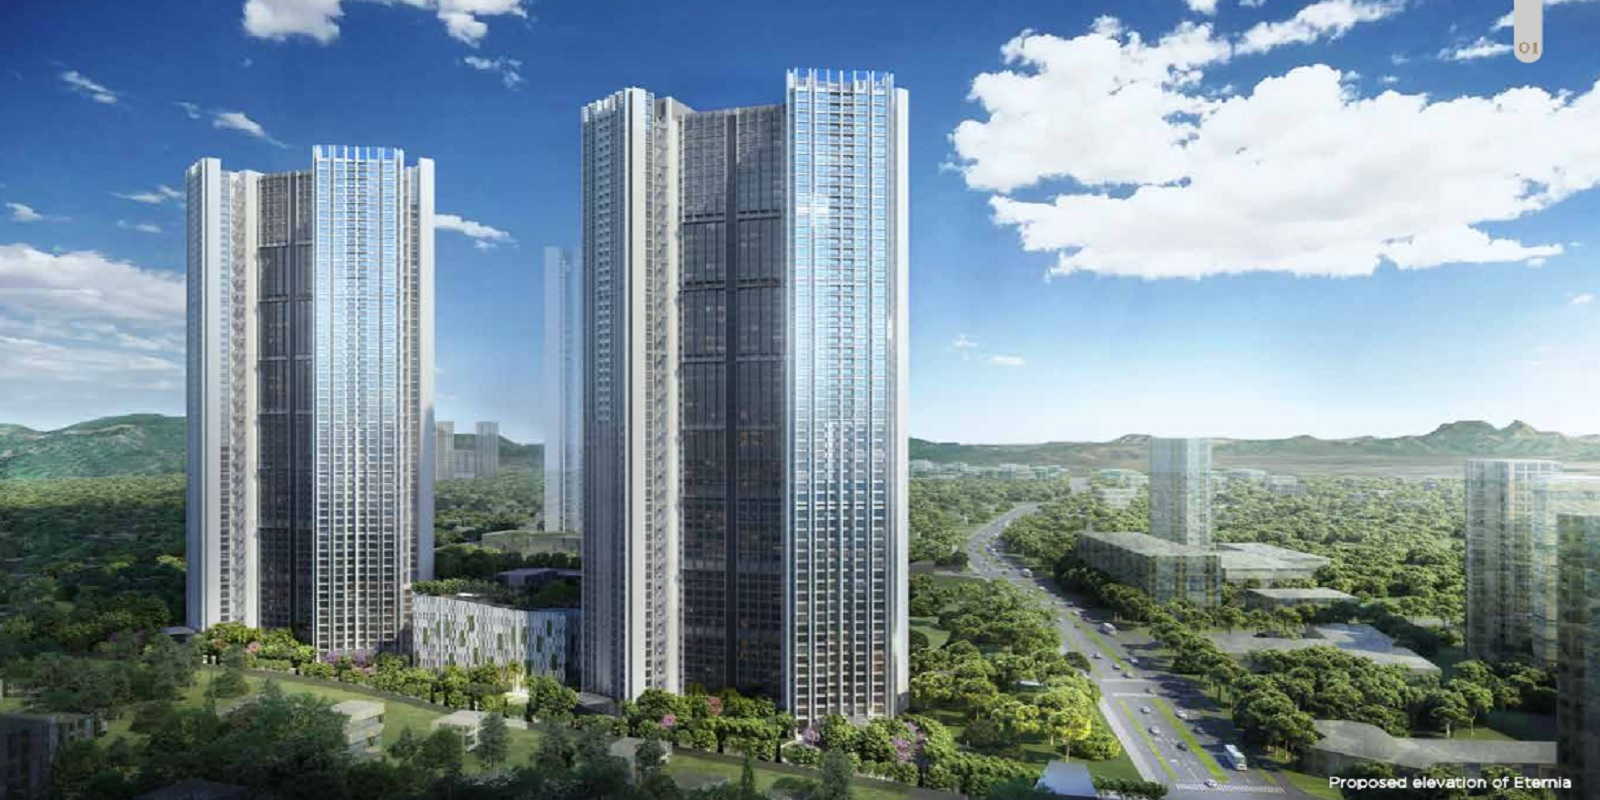 oberoi eternia project project large image1